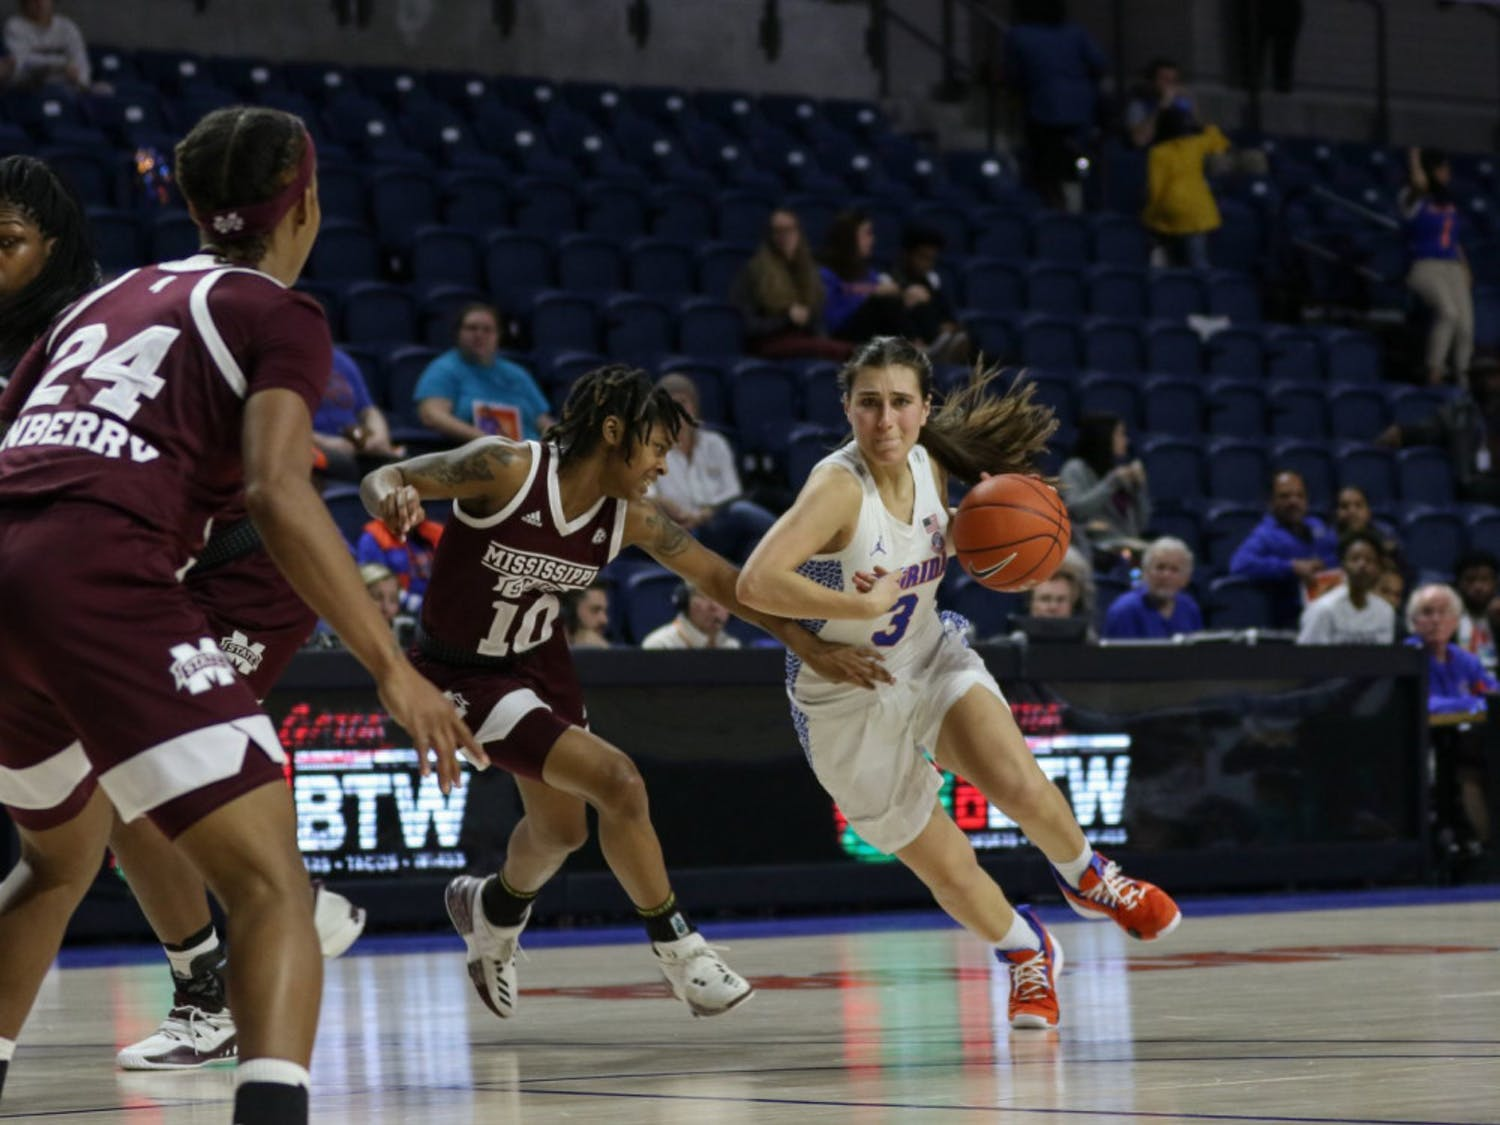 UF guard Funda Nakkasoglu became thesecond active player in the SEC to cross 2,000 career points in the Gators' regular-season finale victory over Vanderbilt on Sunday.